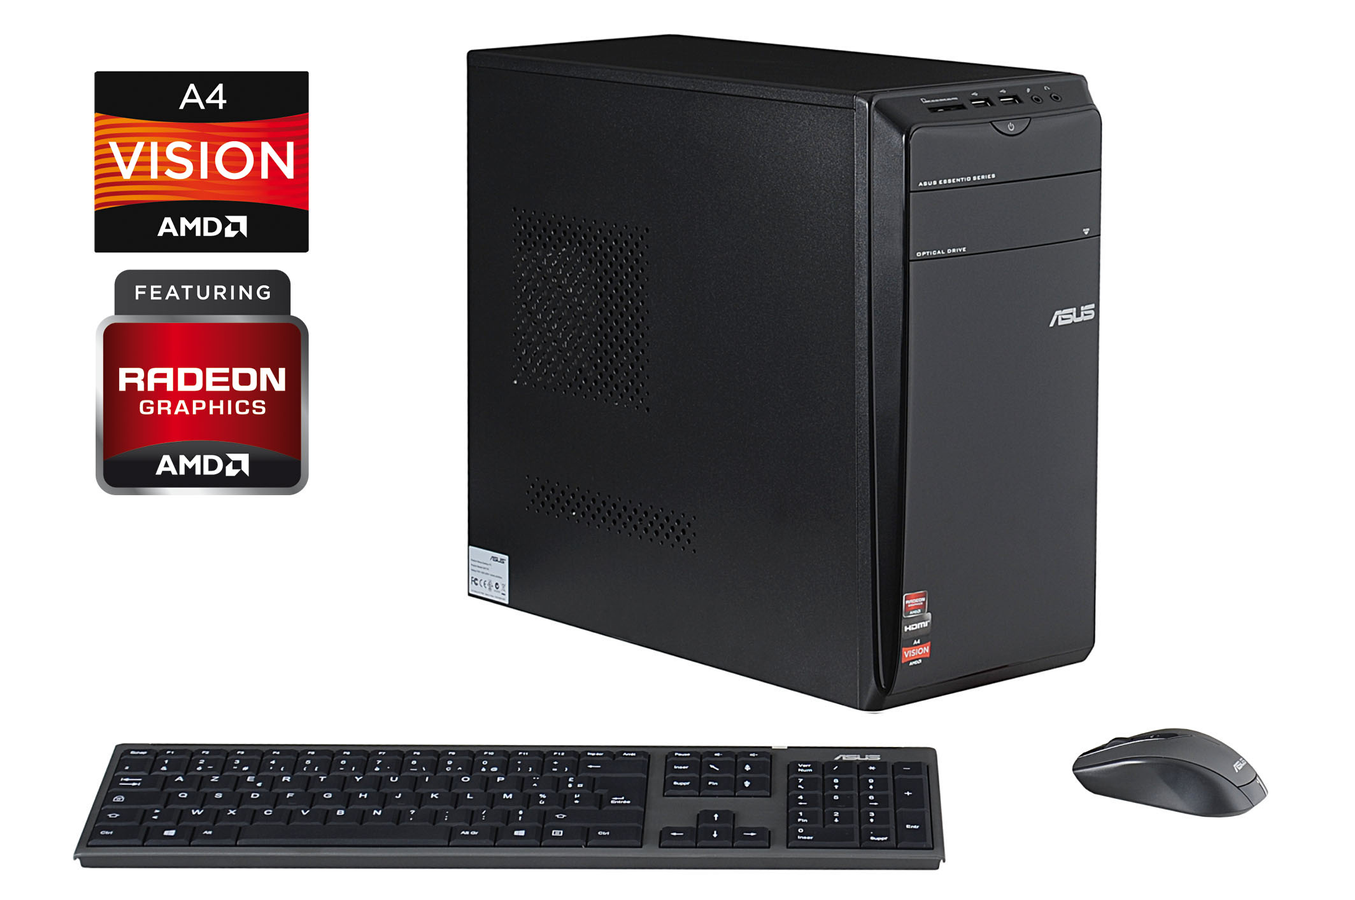 Pc de bureau asus cm1735 fr003s 3794113 darty - Ordinateur de bureau darty ...